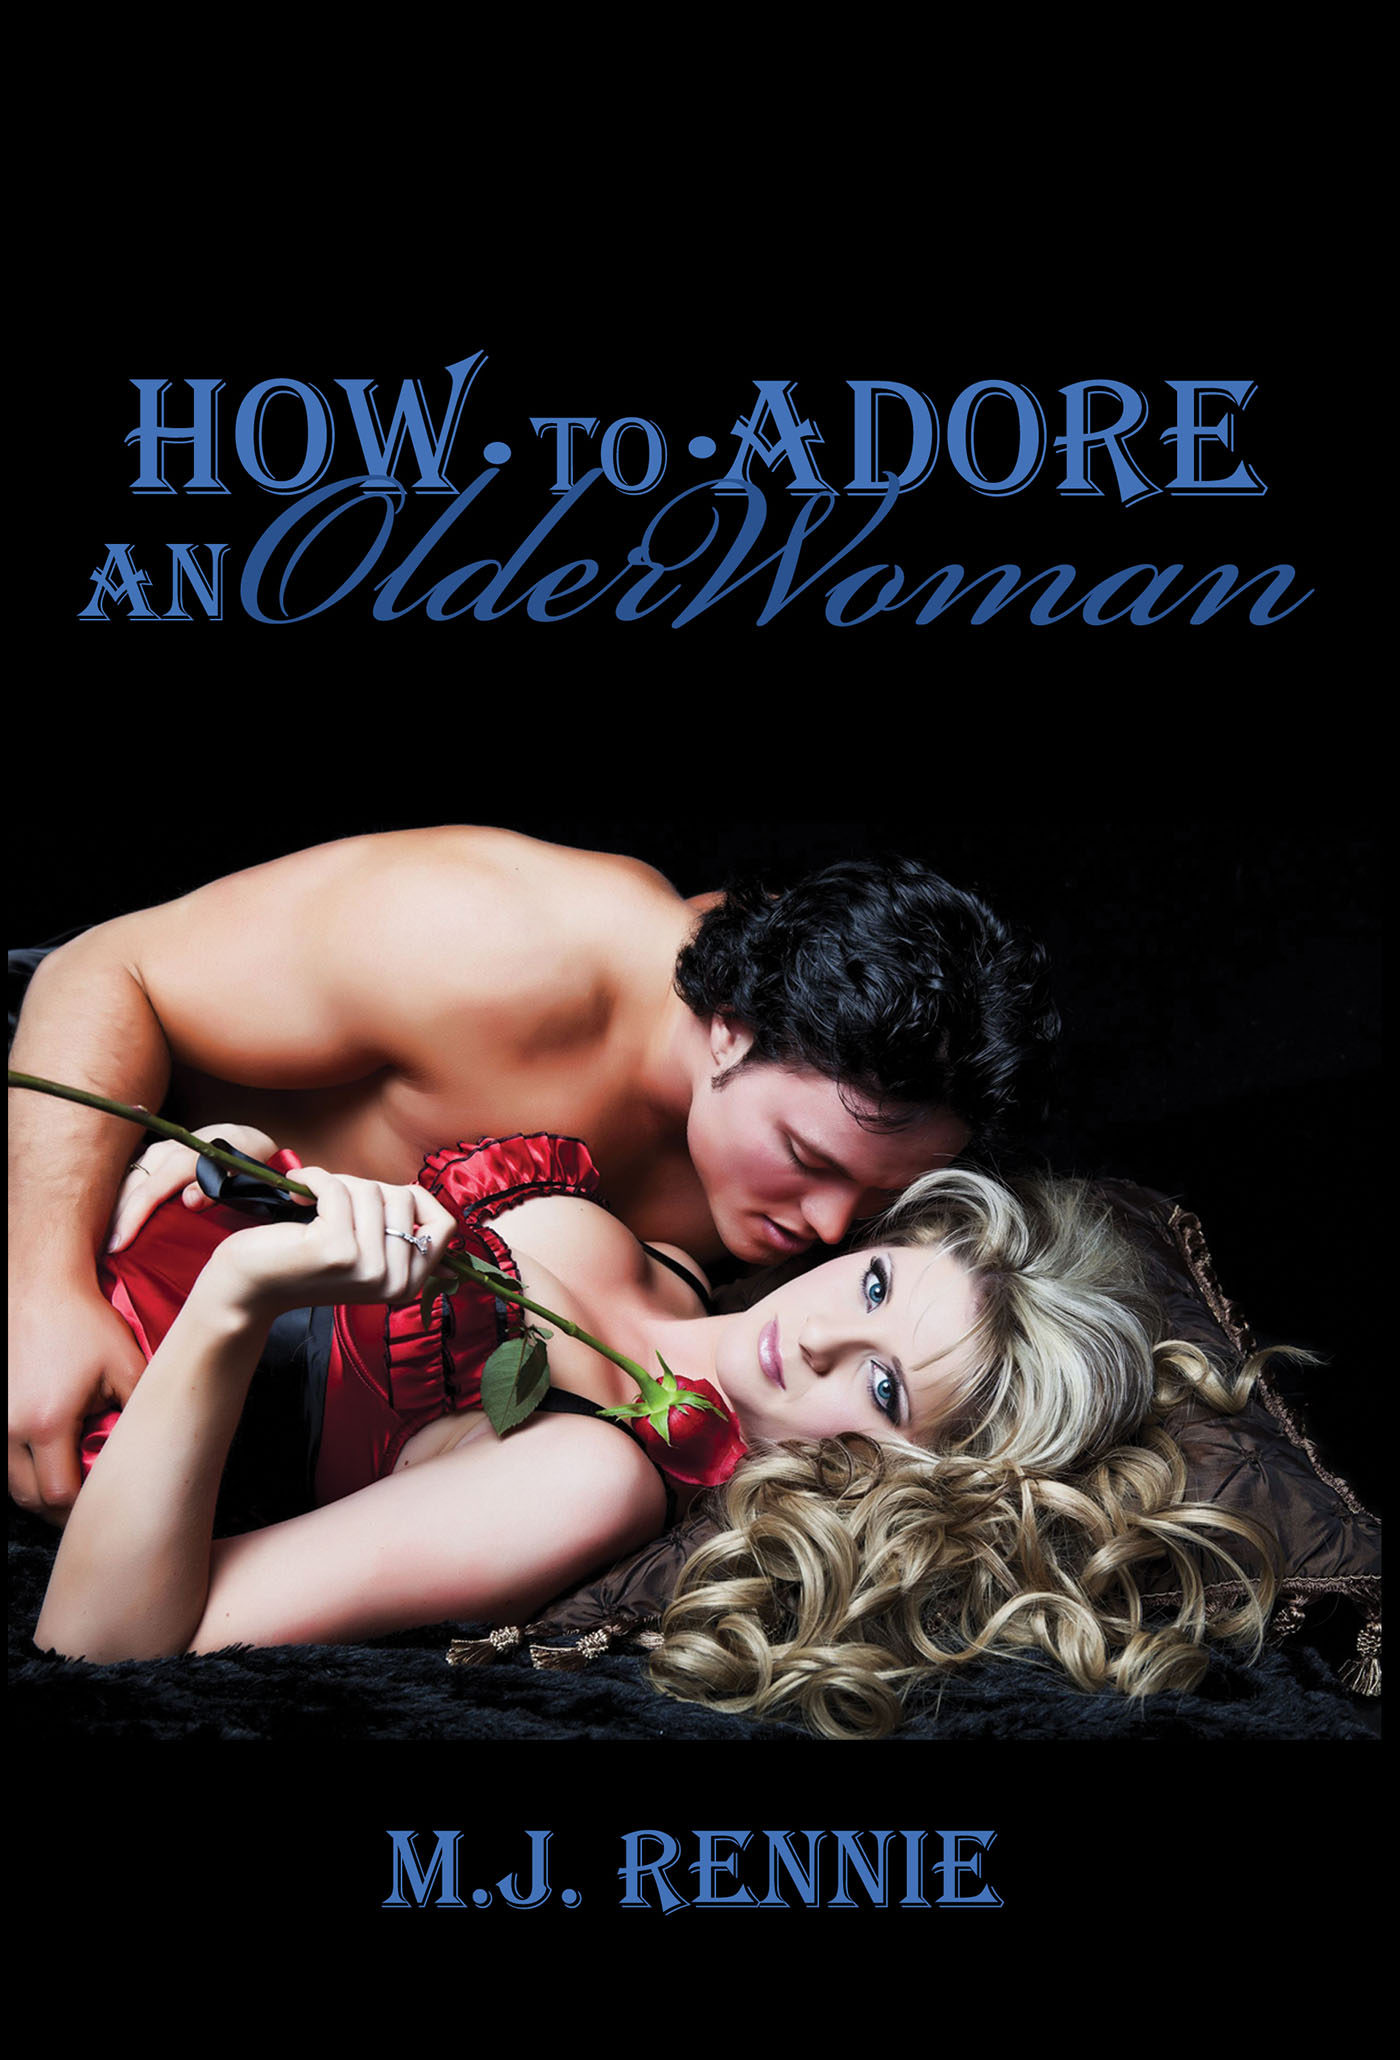 How to adore a woman